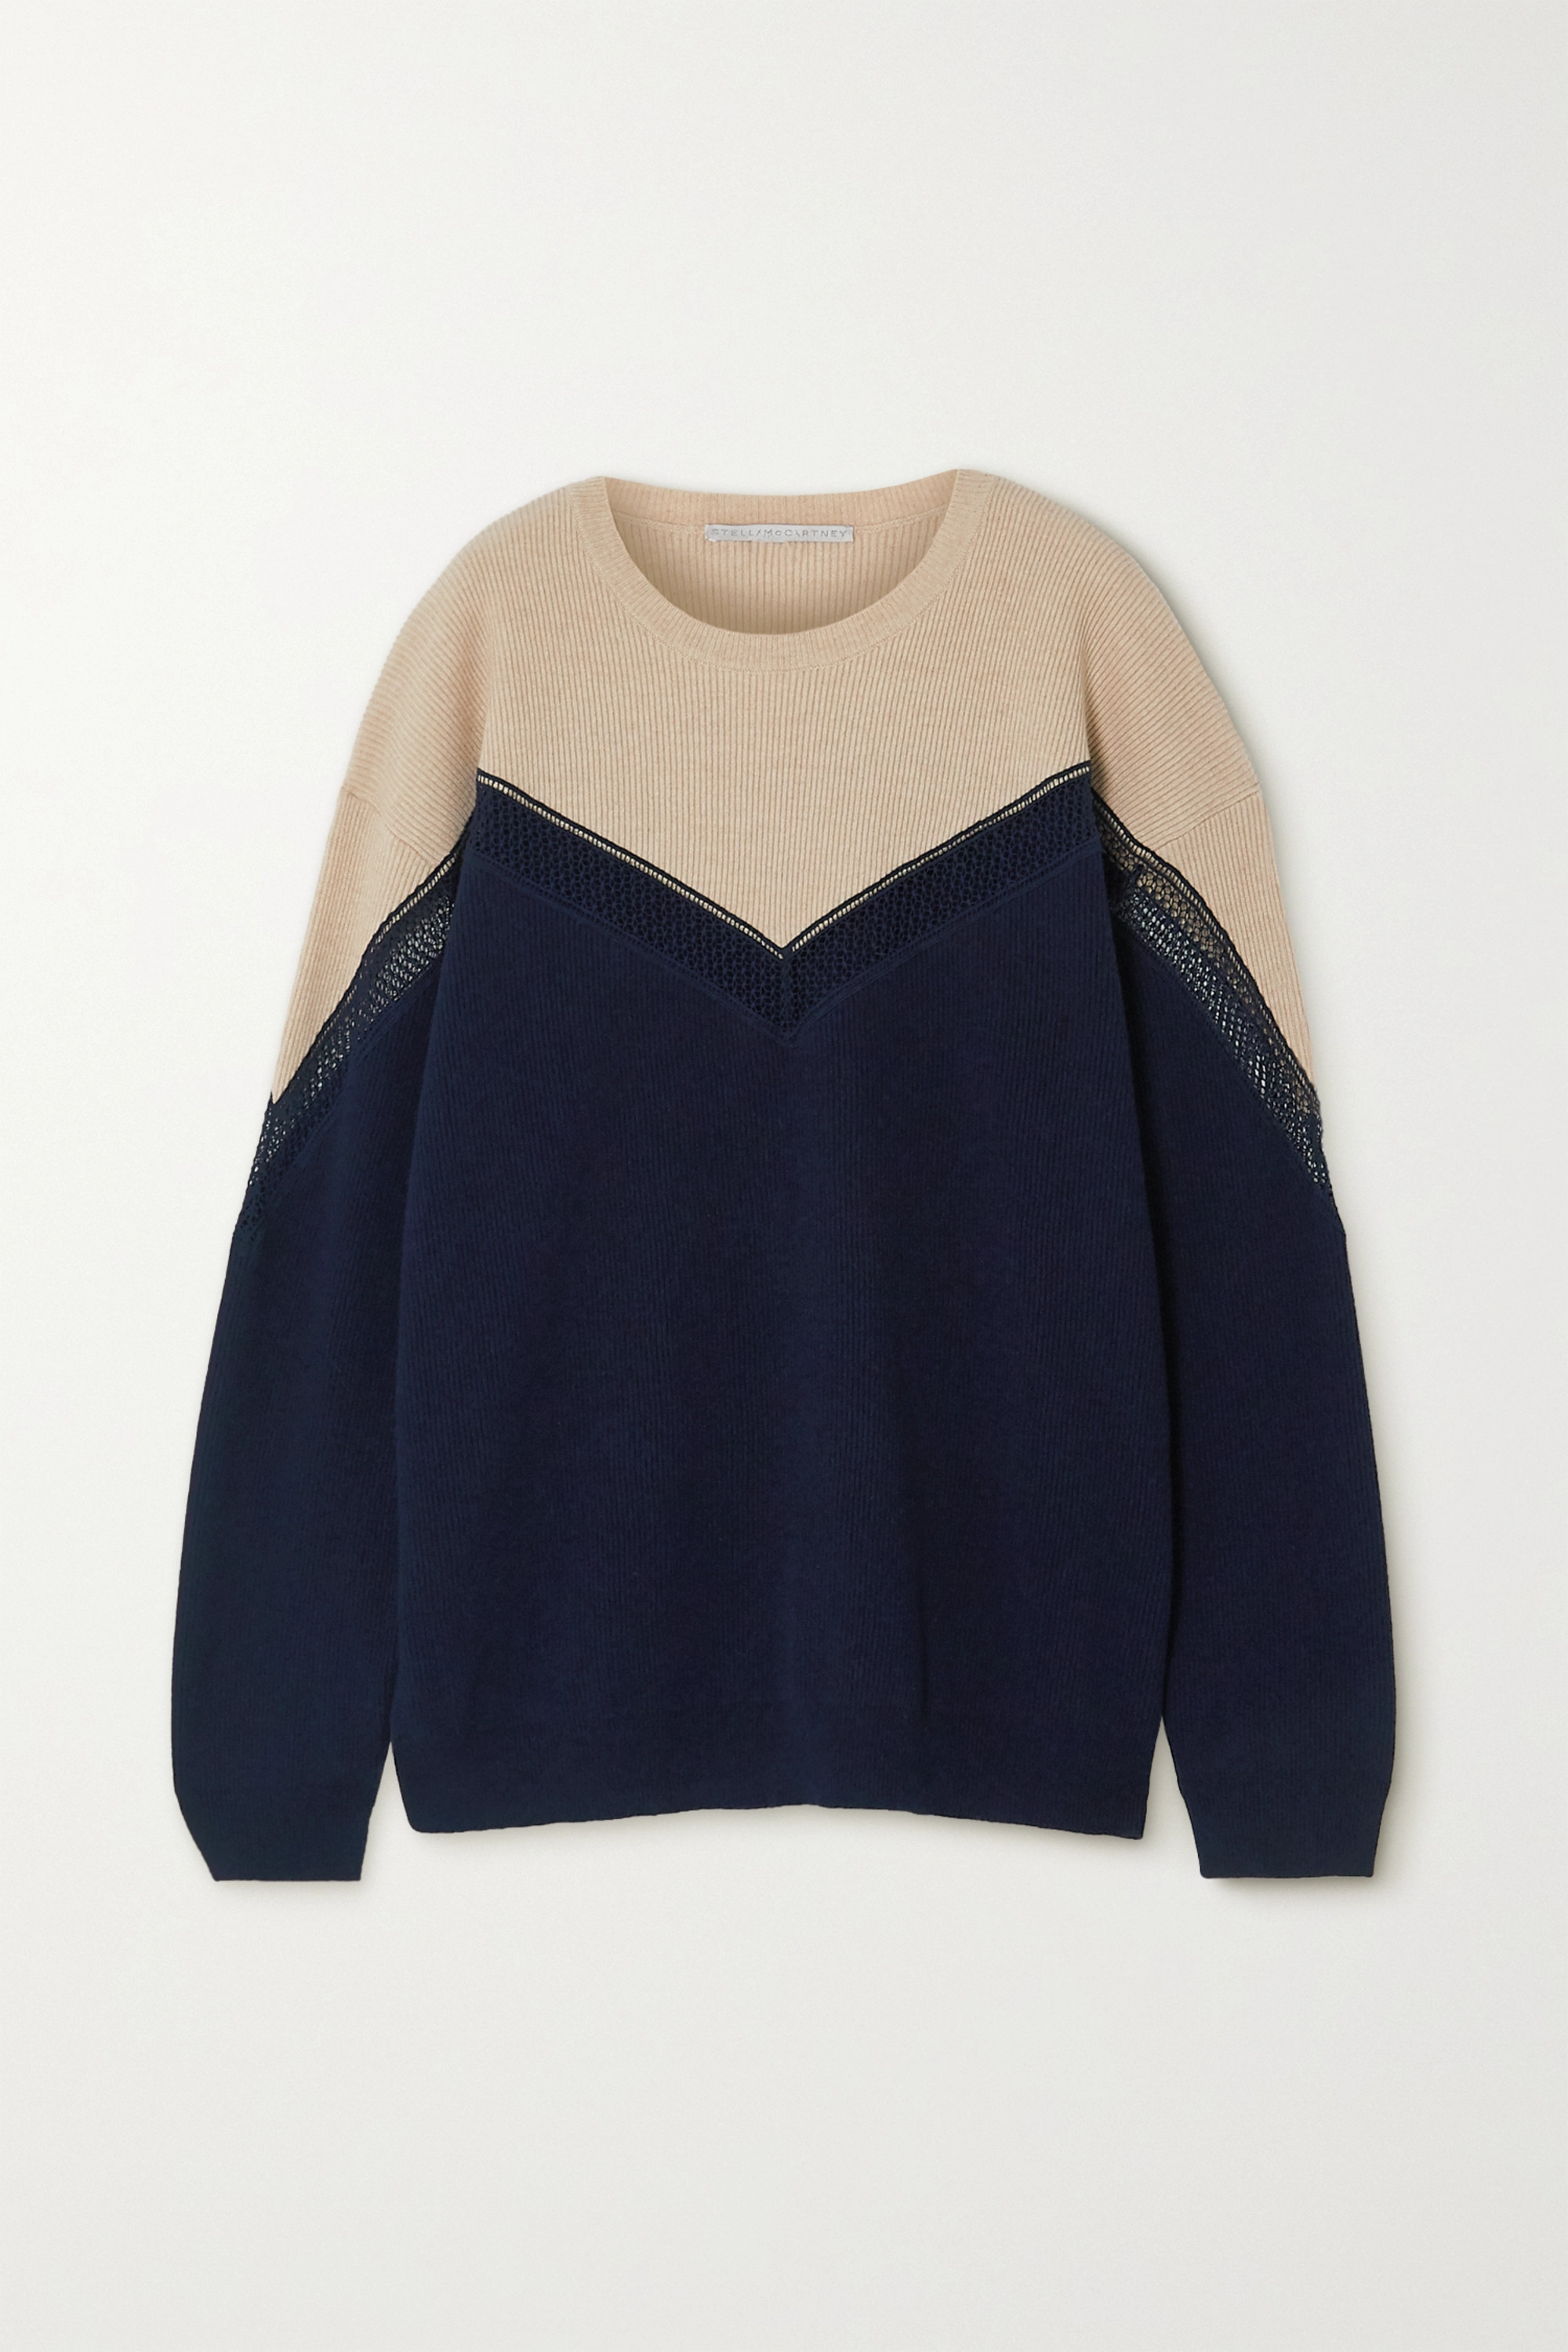 Stella McCartney + NET SUSTAIN two-tone paneled ribbed cashmere and wool-blend sweater